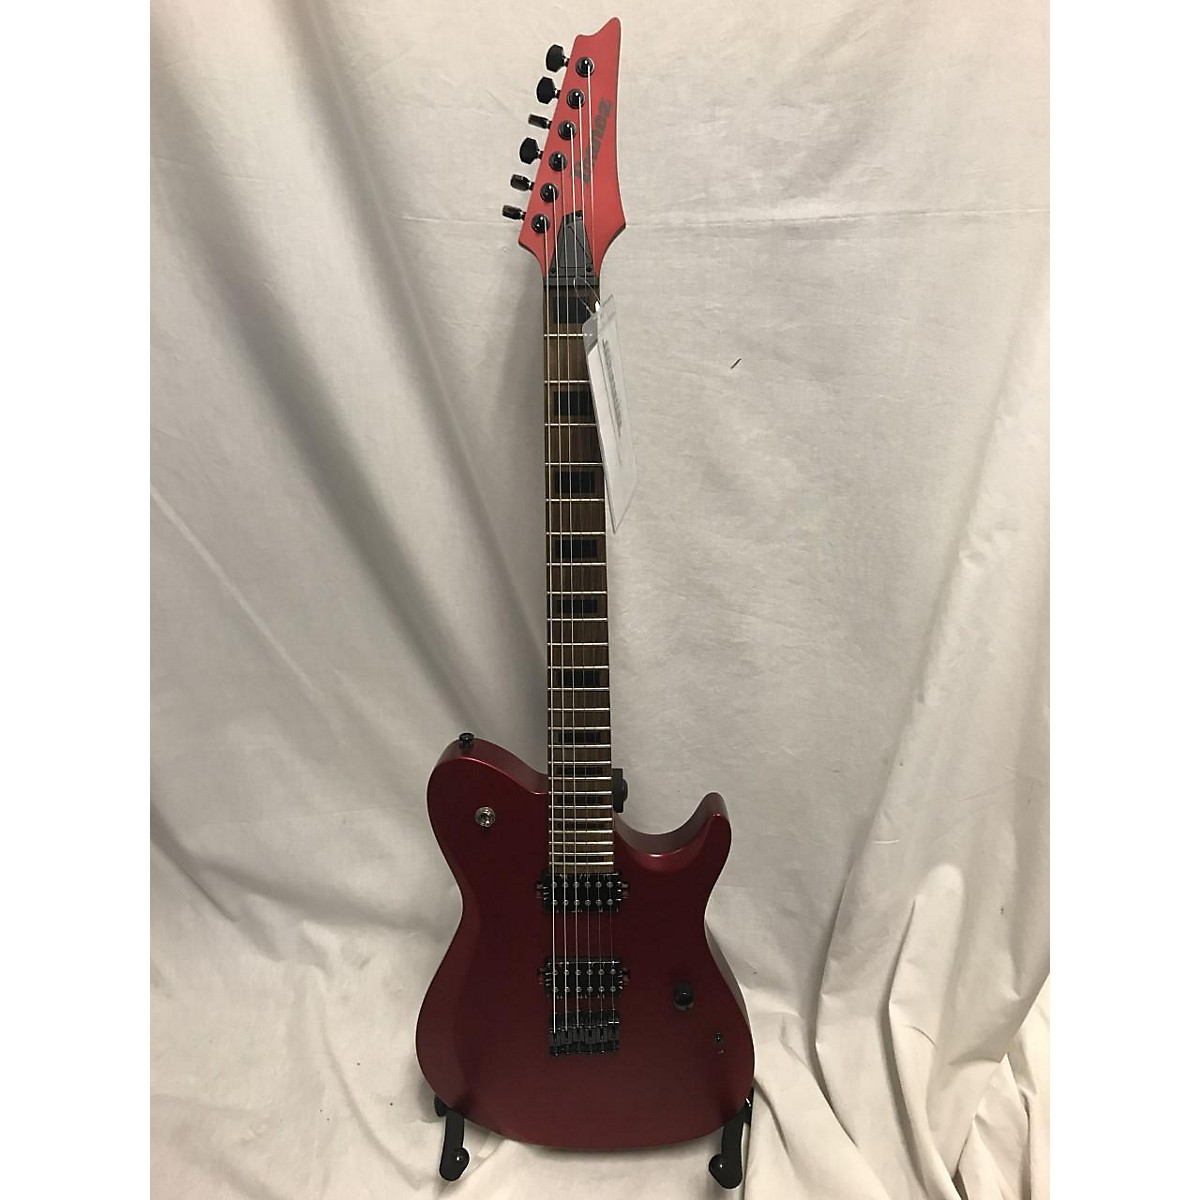 Ibanez FR800 Solid Body Electric Guitar